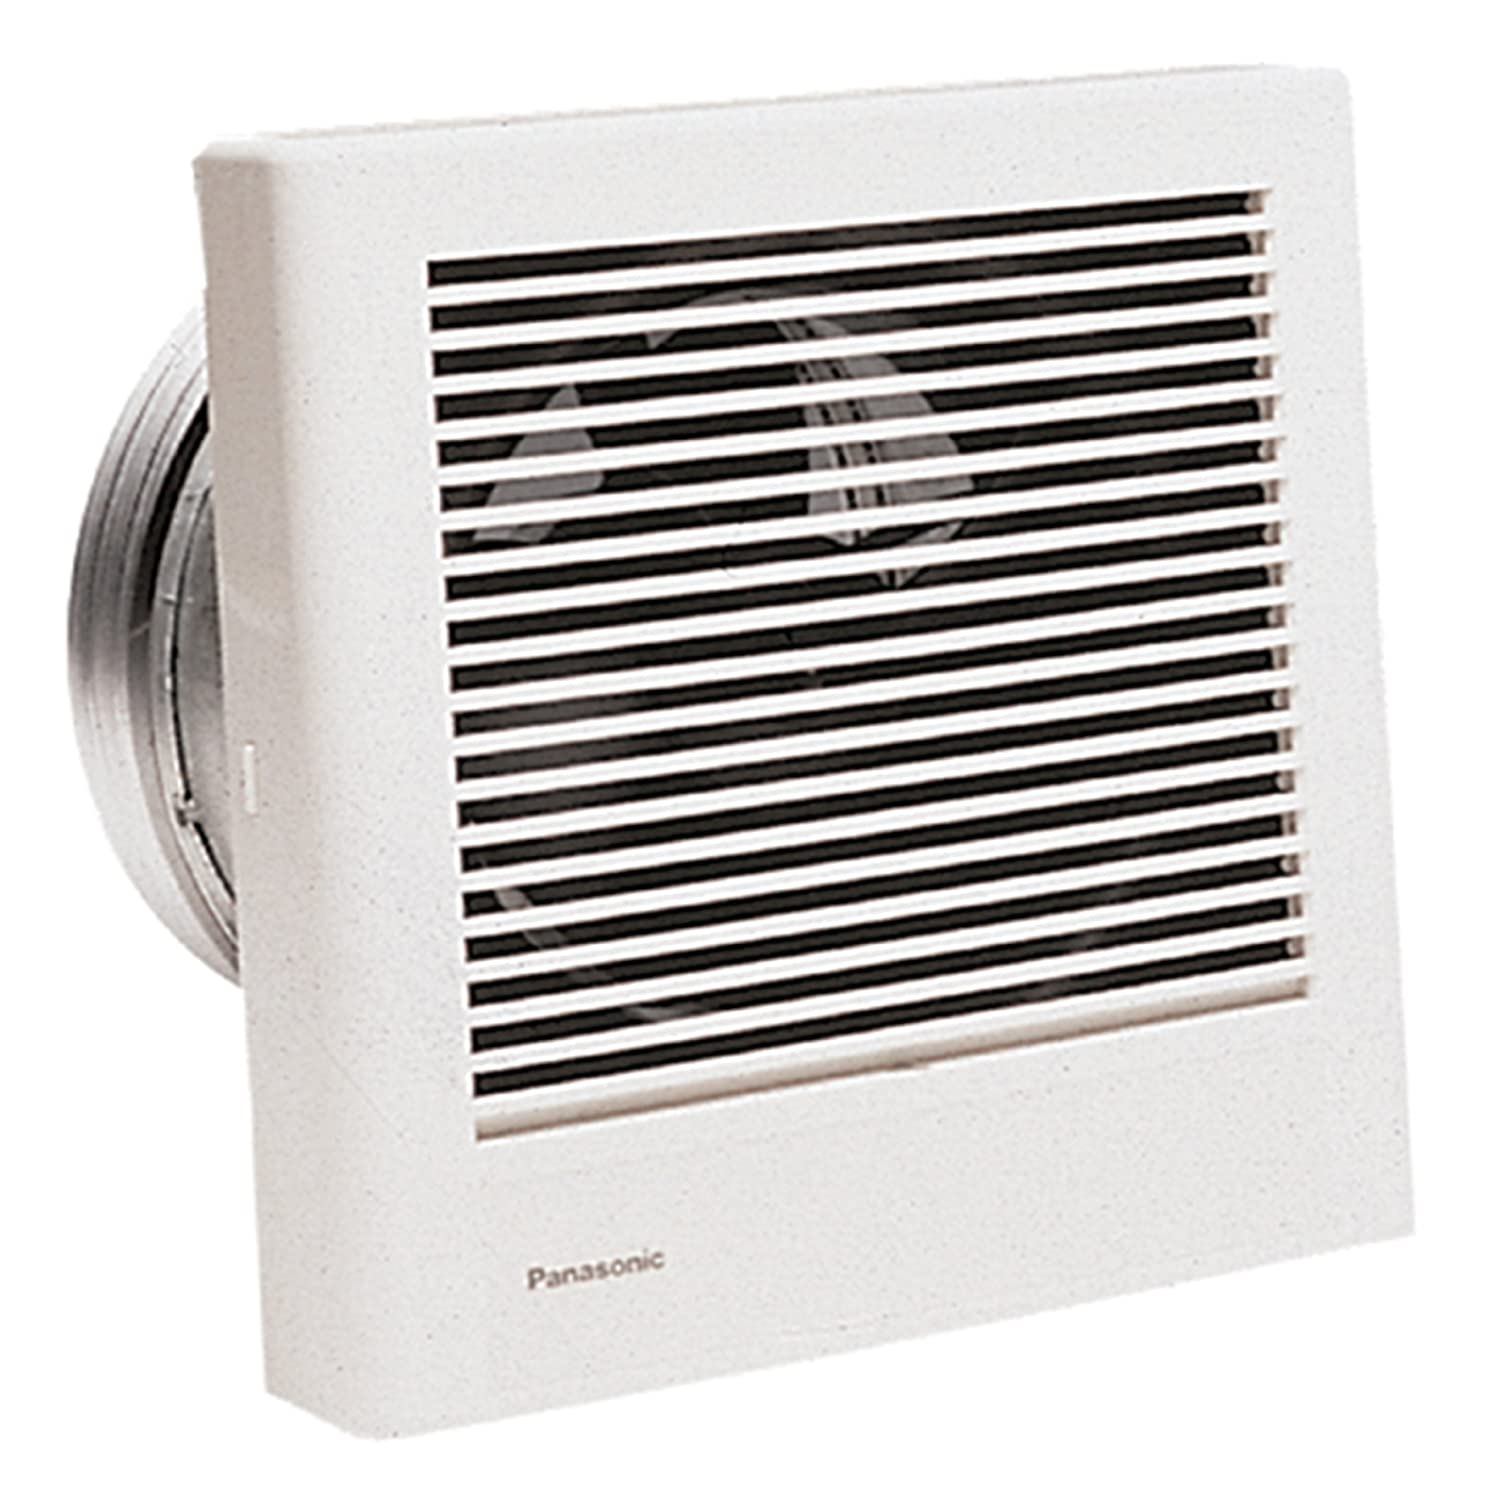 The 50 Top Fan And Ventilation Systems Basic Electrical Wiring Diagrams Heater Light For Bathroom As Well This Wall Mounted Has Been Specifically Designed Rooms Where Ceiling Mounting Is Not Possible Features An Exterior Hood To Help Prevent Back